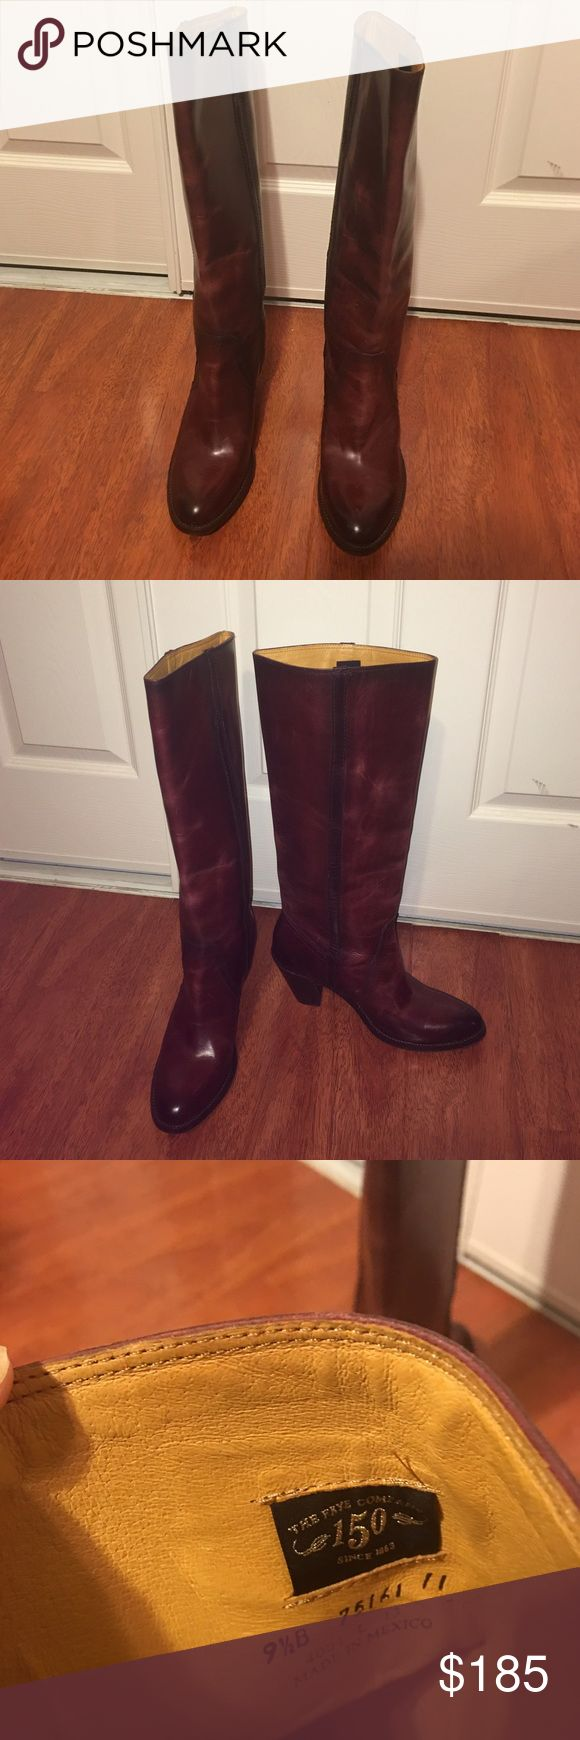 🎉Sale🎉!! Frye Mustang Pull On Boots!! These boots are part of the 150th anniversary collection. They are in excellent condition. No box. Offers Welcome 😊 Frye Shoes